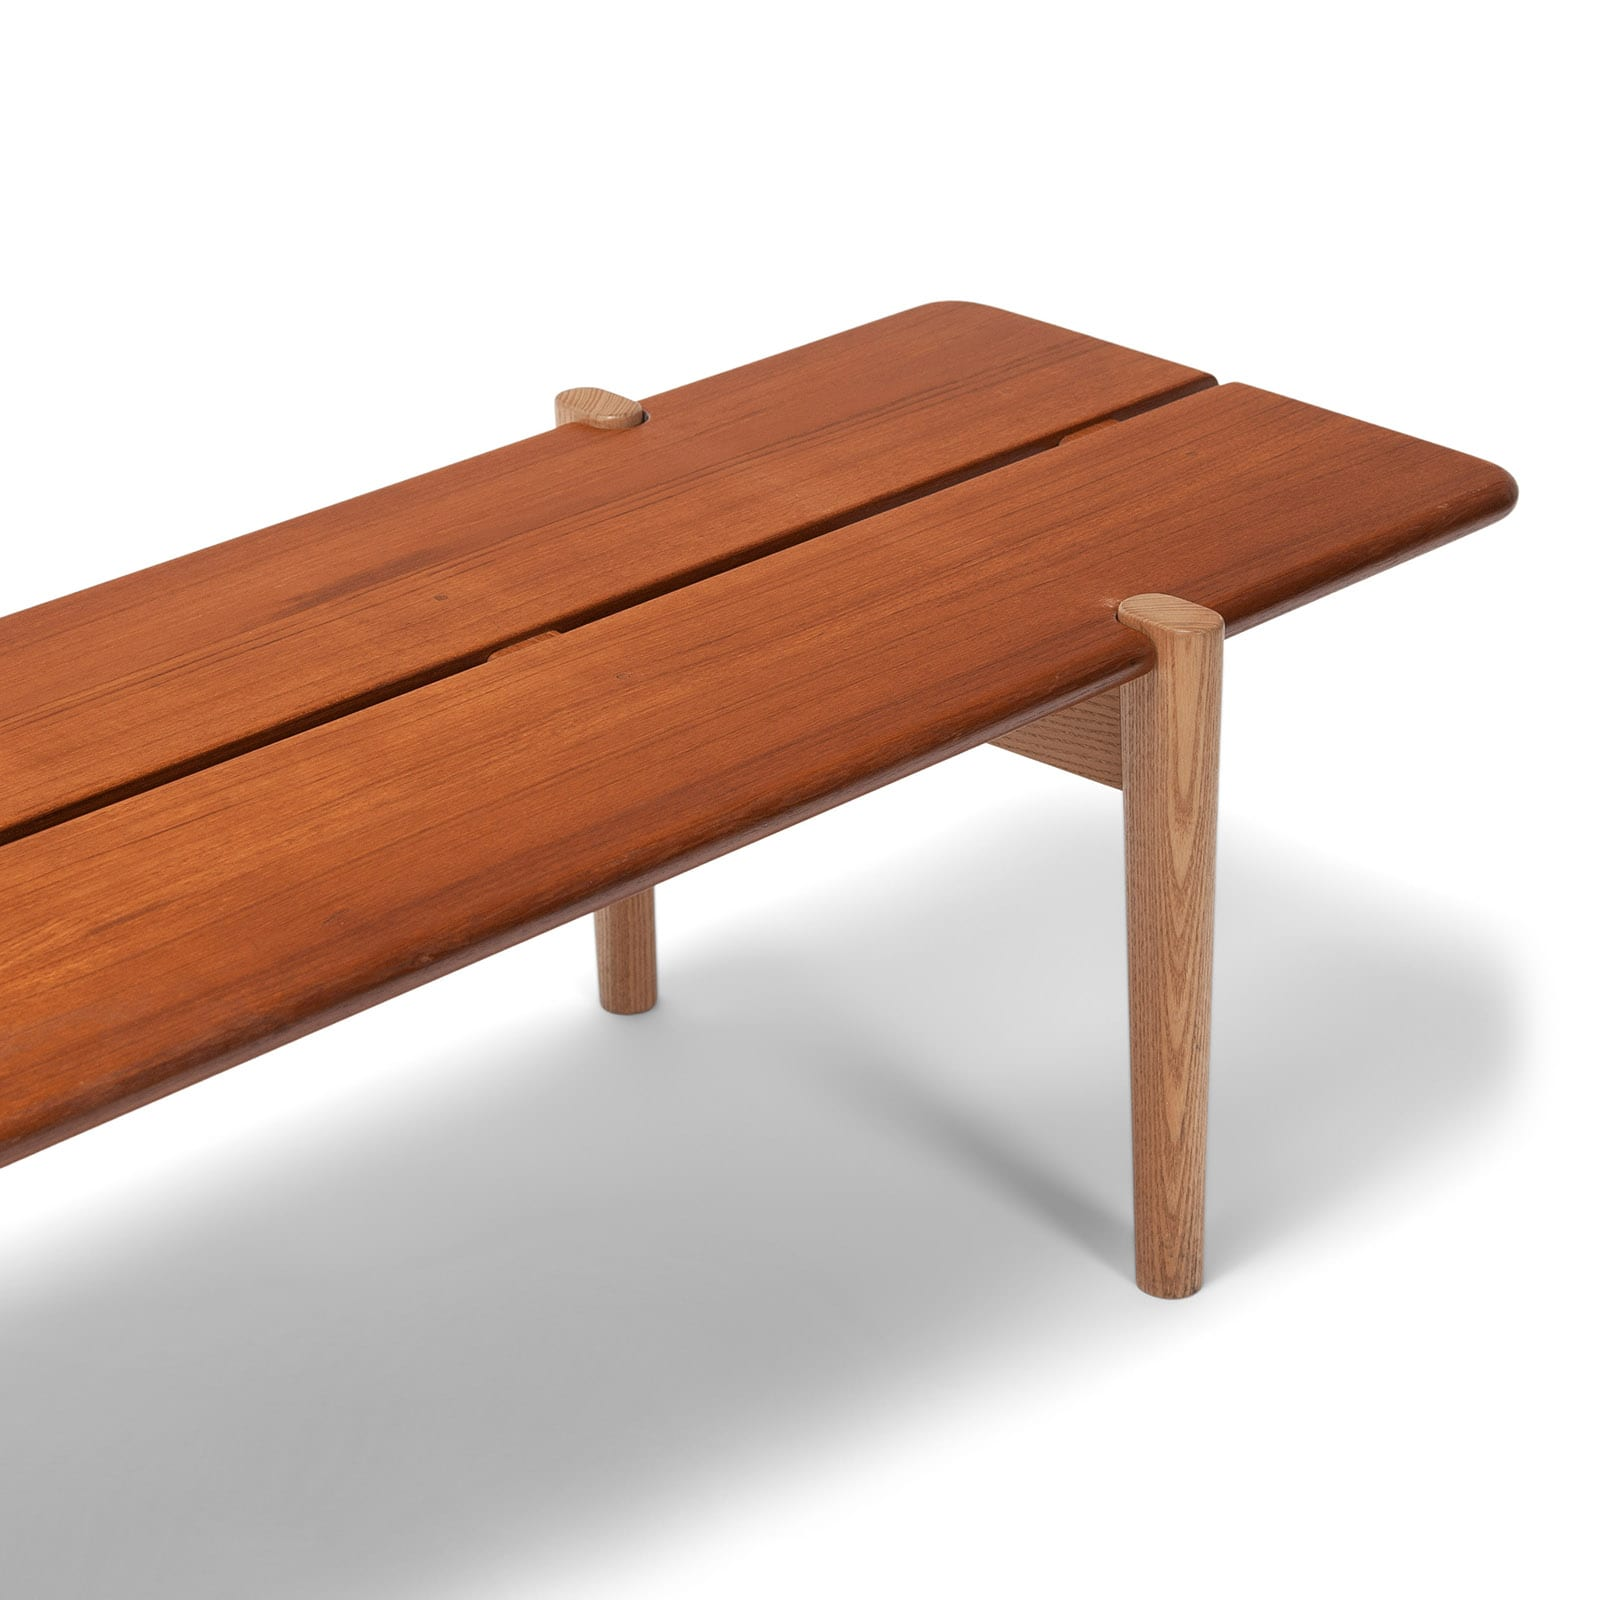 A rare table bench